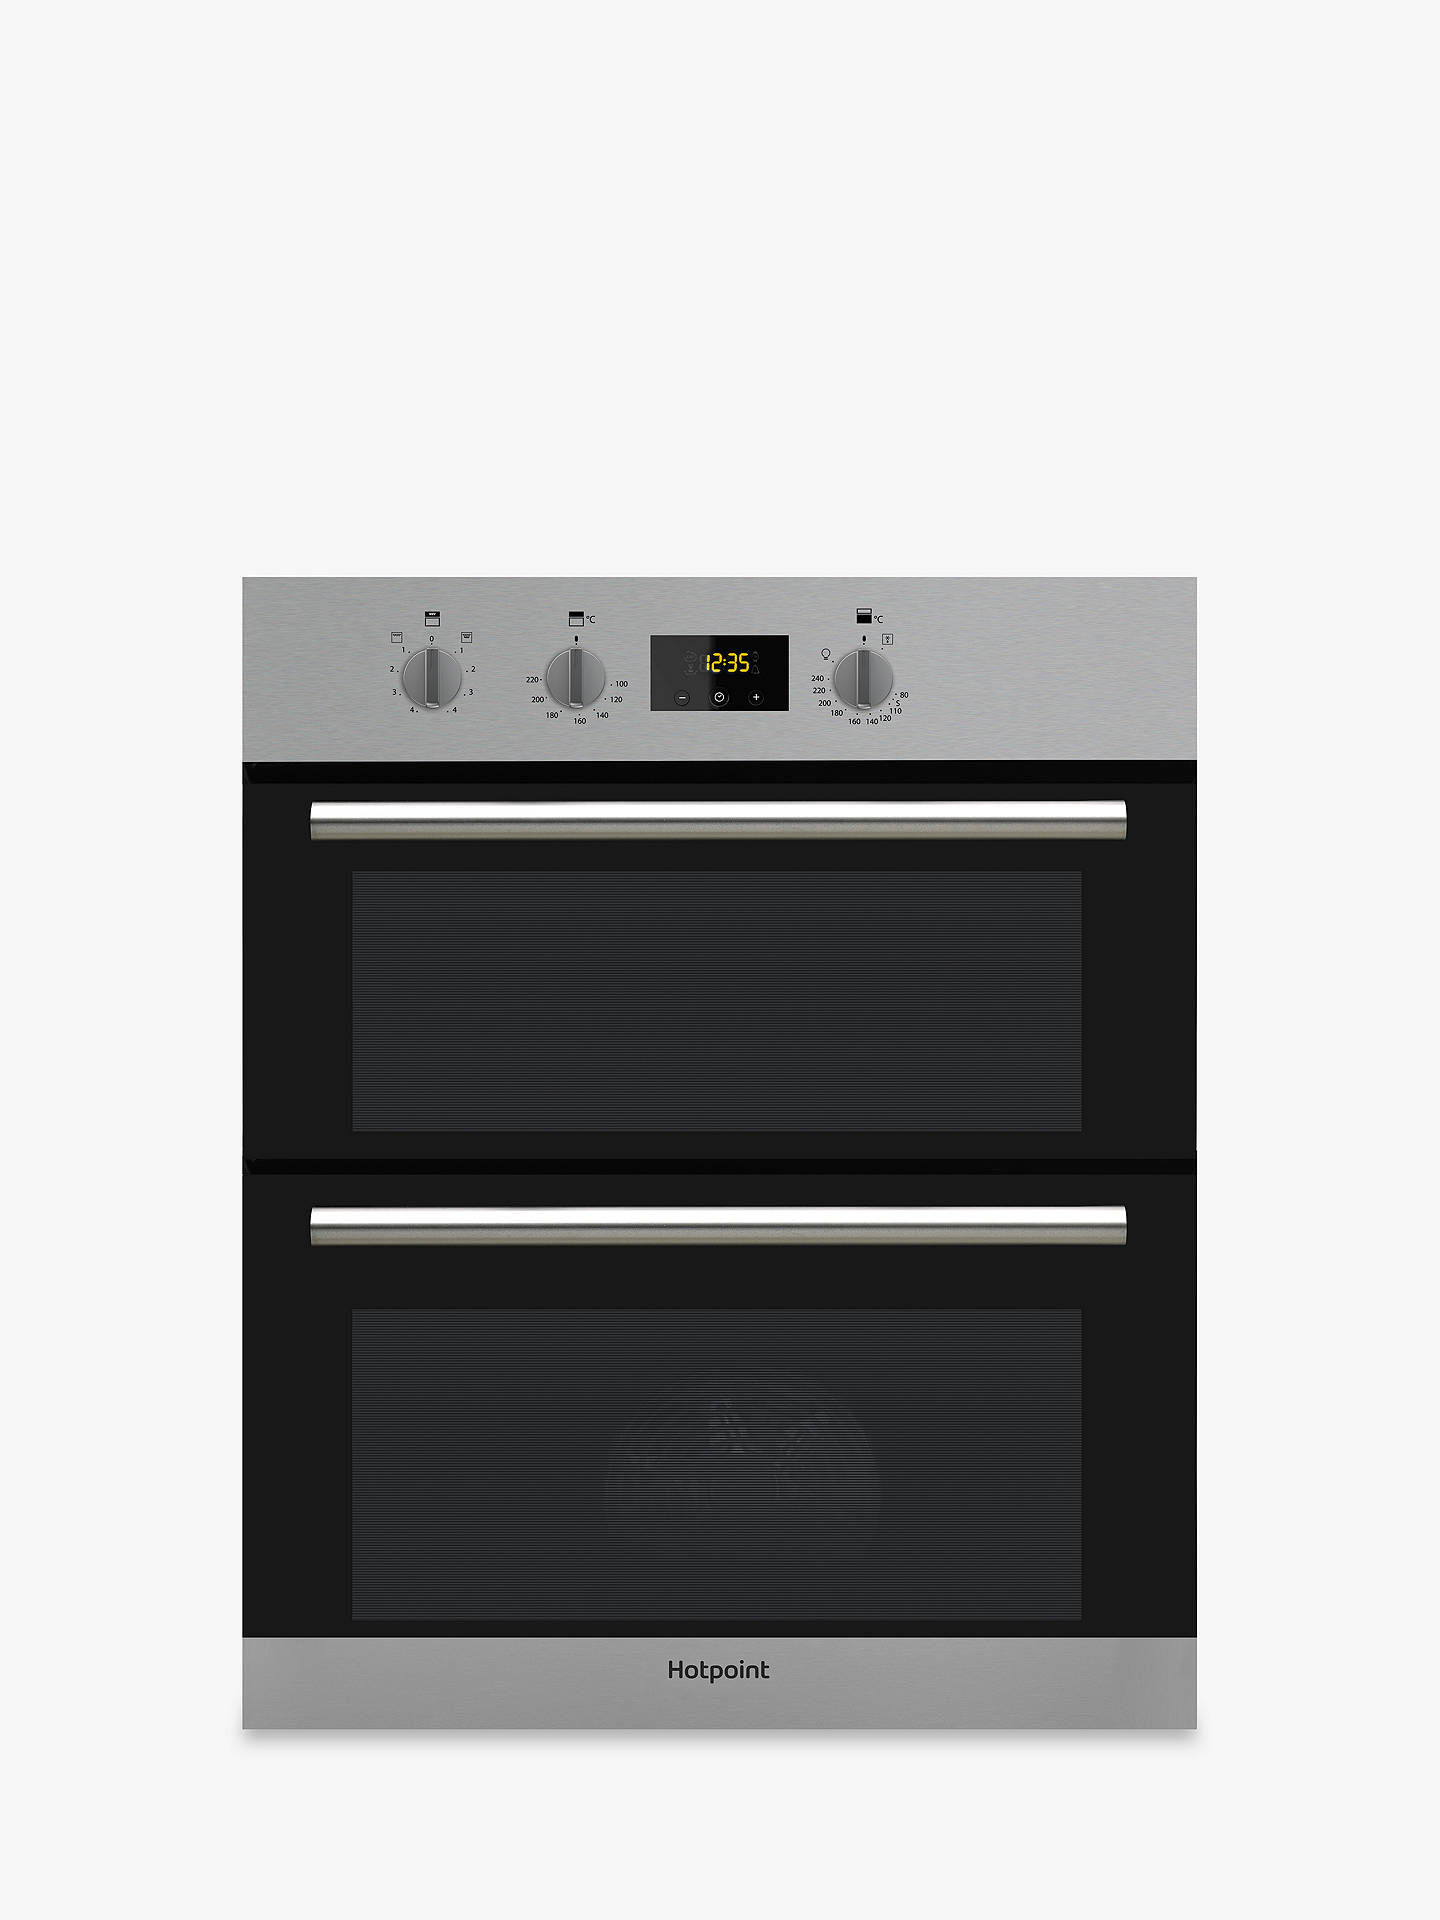 Hotpoint Du2540 Class 2 Built Under Electric Double Oven B B Energy Rating Stainless Steel Inox